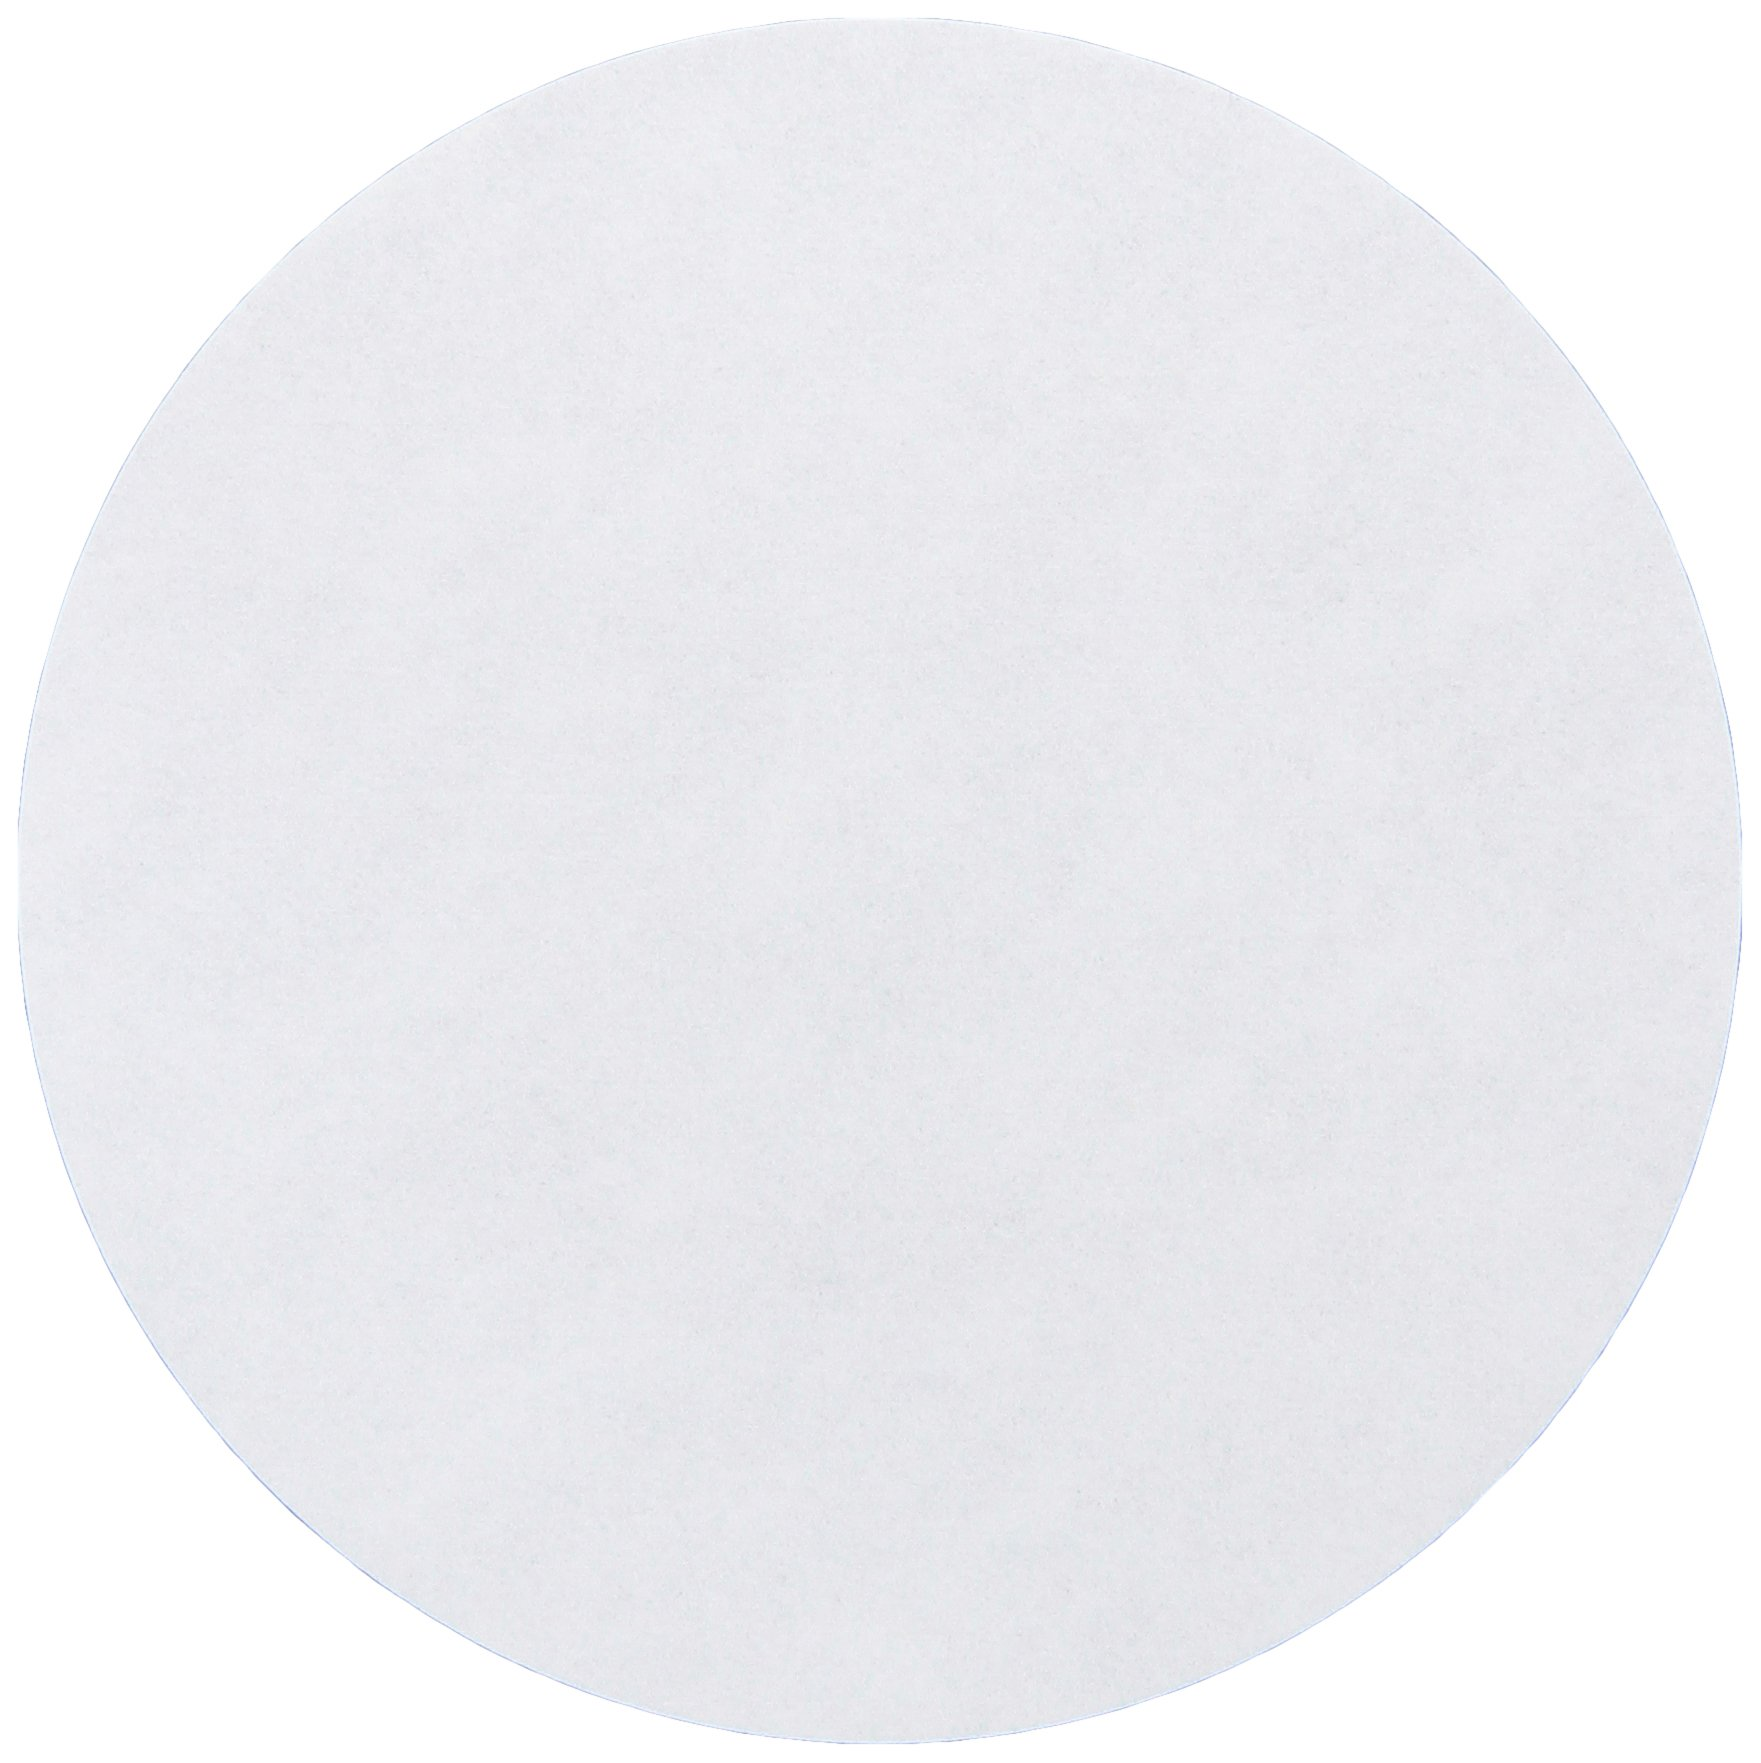 Whatman 4712B30PK 1001110 Grade 1 Qualitative Filter Paper, 110 mm Thick and Max Volume 571 ml/m (Pack of 100) by Whatman